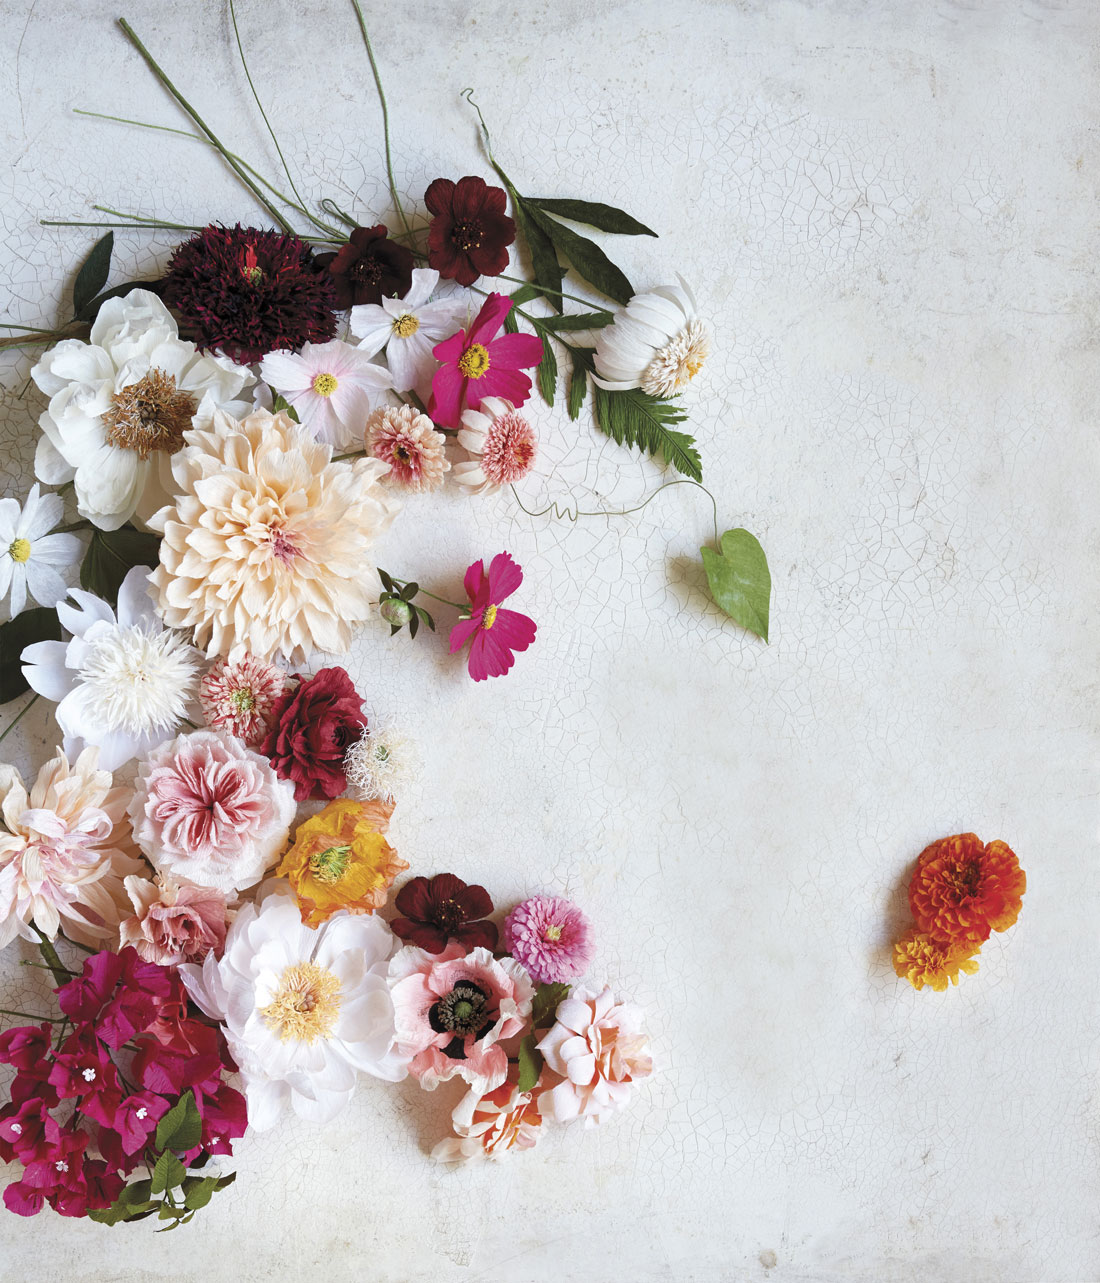 Tiffanie Turner's Debut Book Shows How To Create Her Masterful Paper Flowers